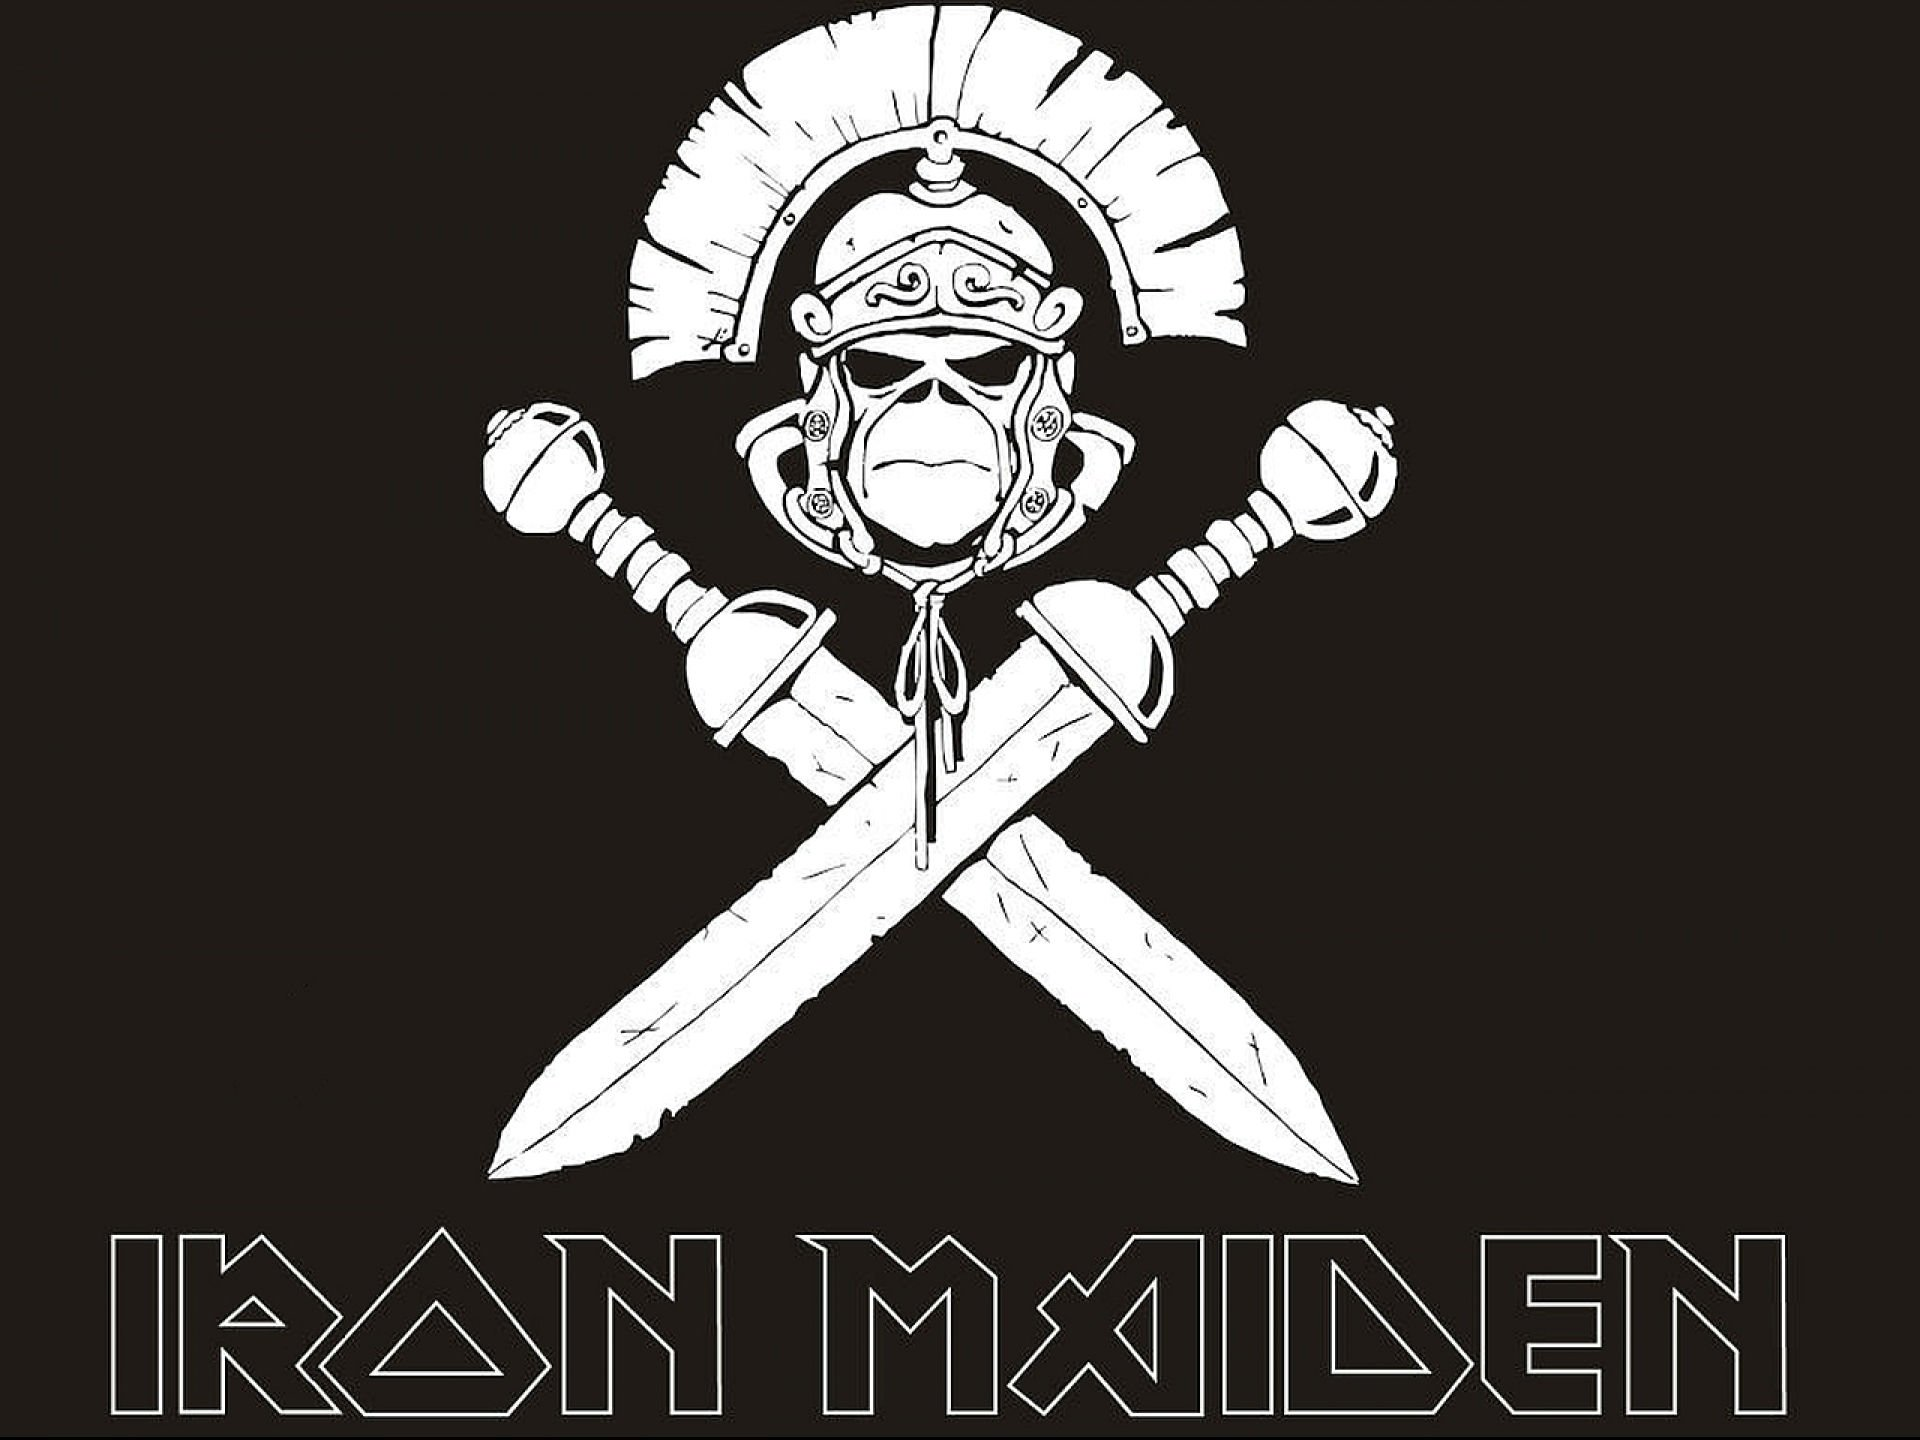 IRON MAIDEN Heavy Metal Power Artwork Fantasy Dark Evil